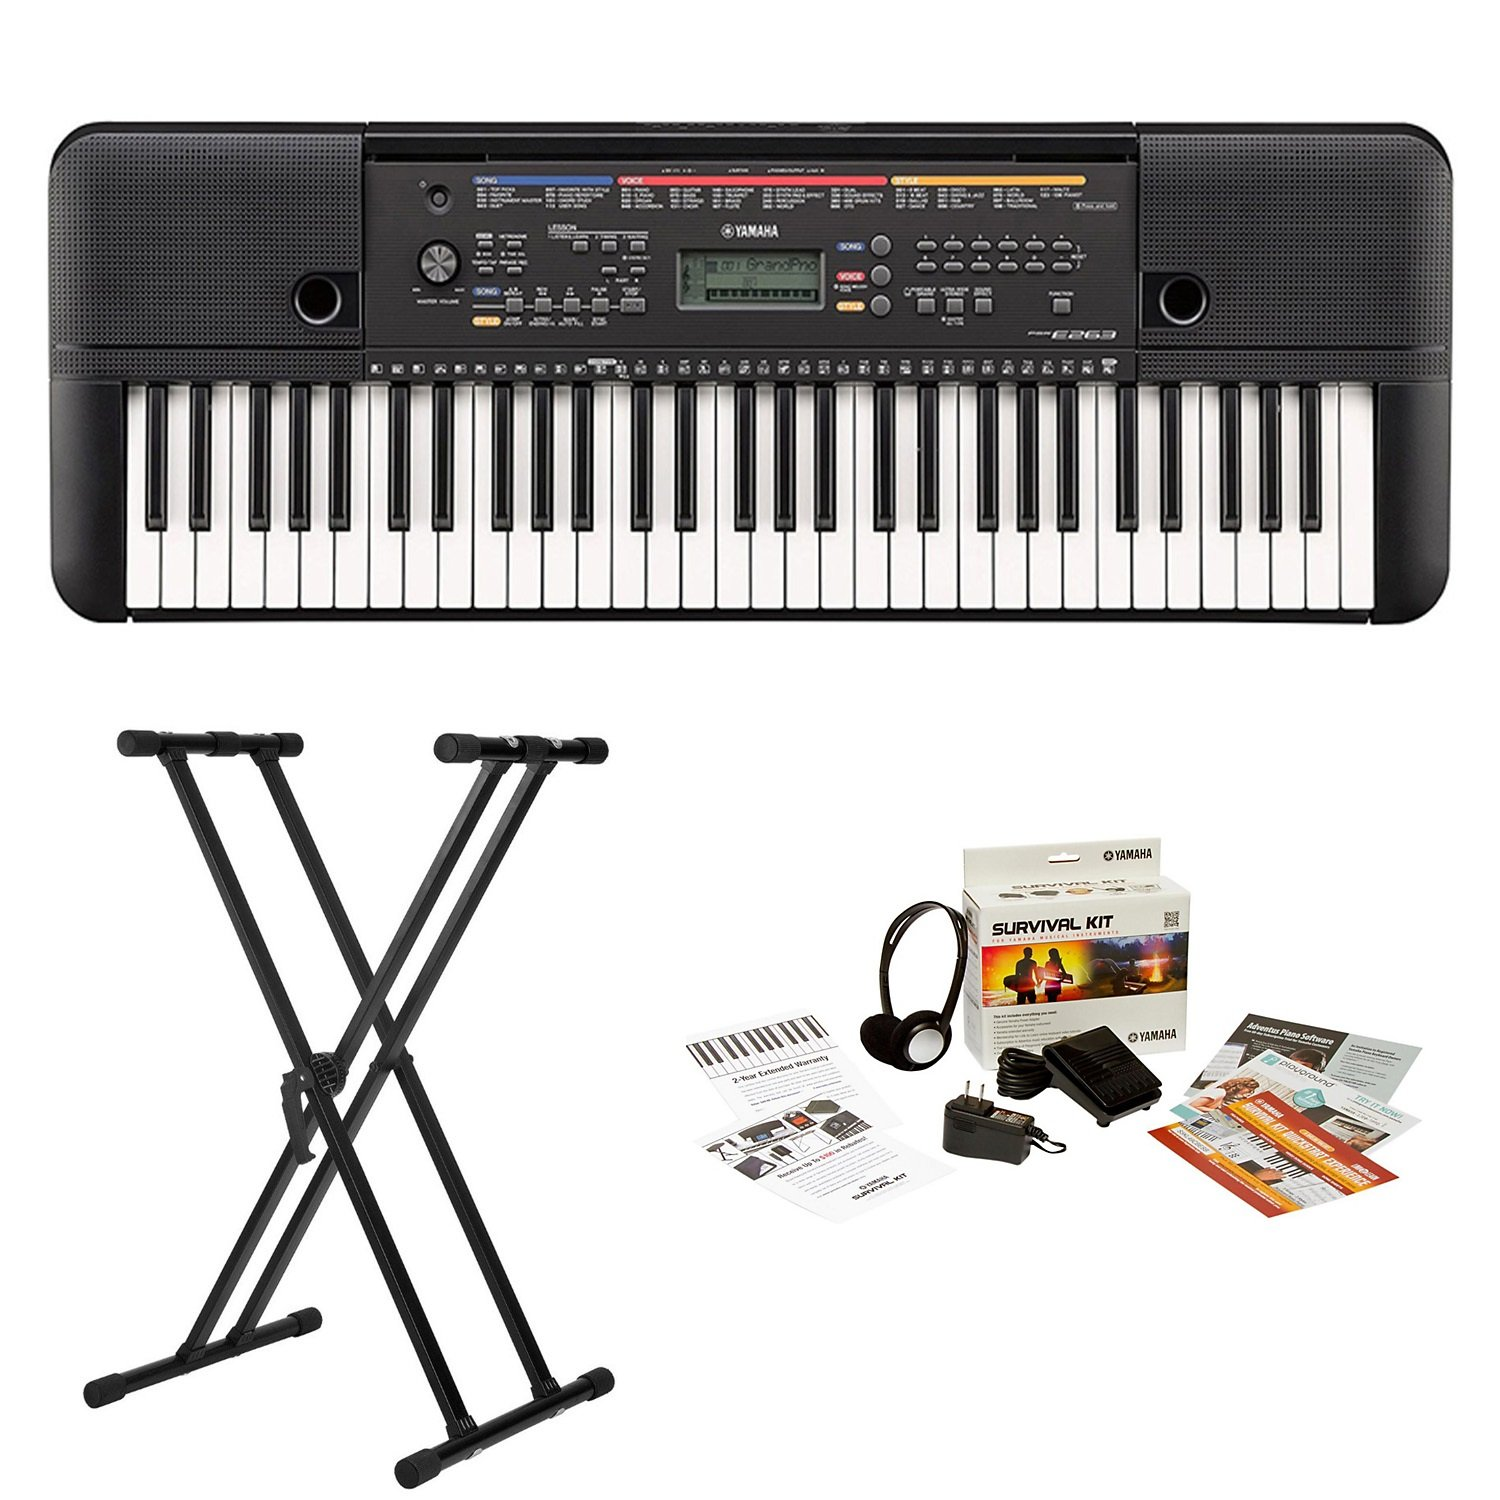 Yamaha PSRE263 61-Key Portable Keyboard with Knox Double X Stand and Survival kit (Includes Power Adapter and 2 Year Warranty) 4334320342